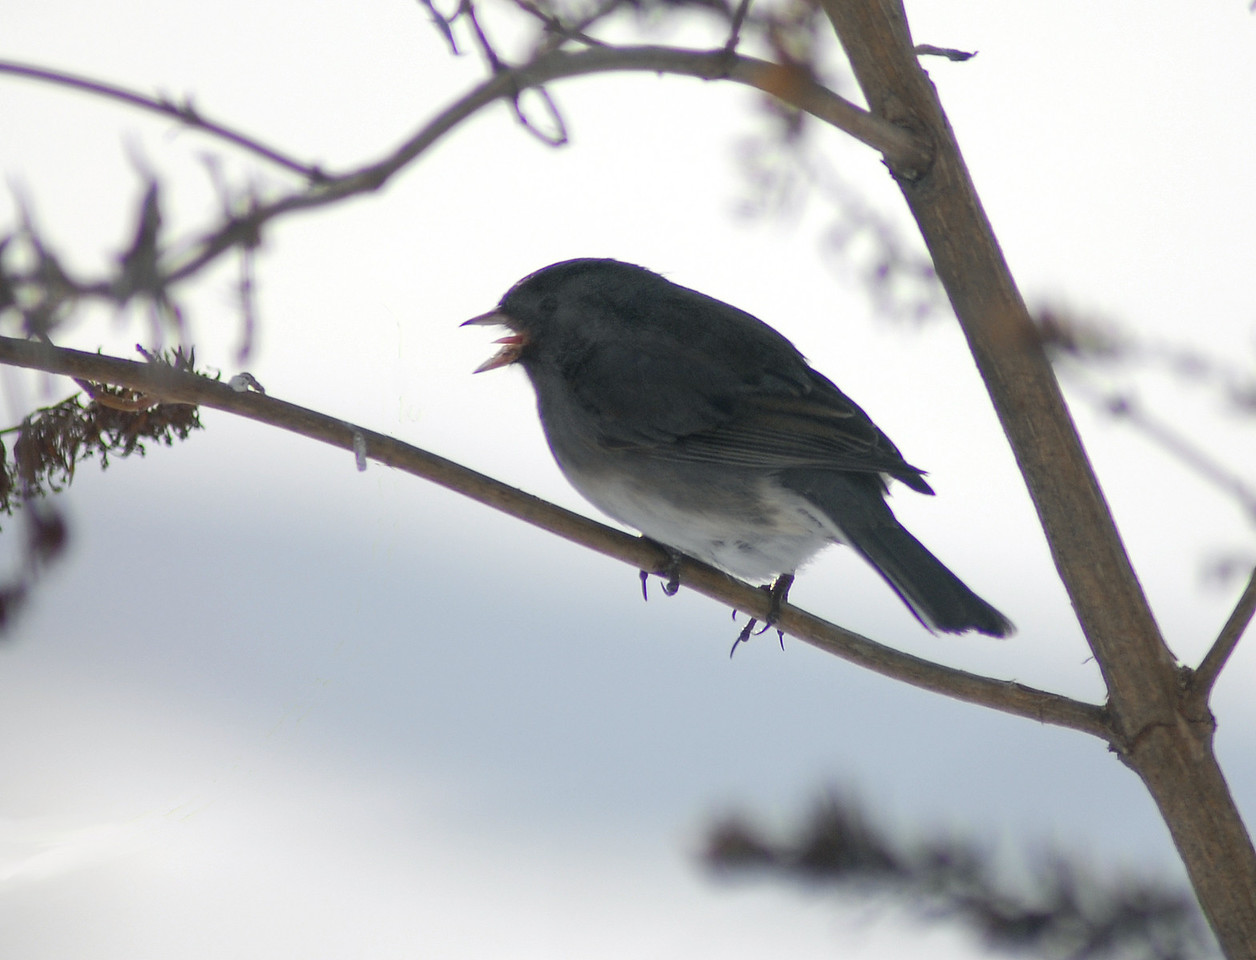 """In the middle of winter it is not wise to stick your tongue out, especially near frosty covered limbs. In the """"dead of Summer"""" this might be a baby bird calling for its mother. In the """"dead of Winter"""" I can only guess this shot caught the black eyed junco at the peak of a high note."""